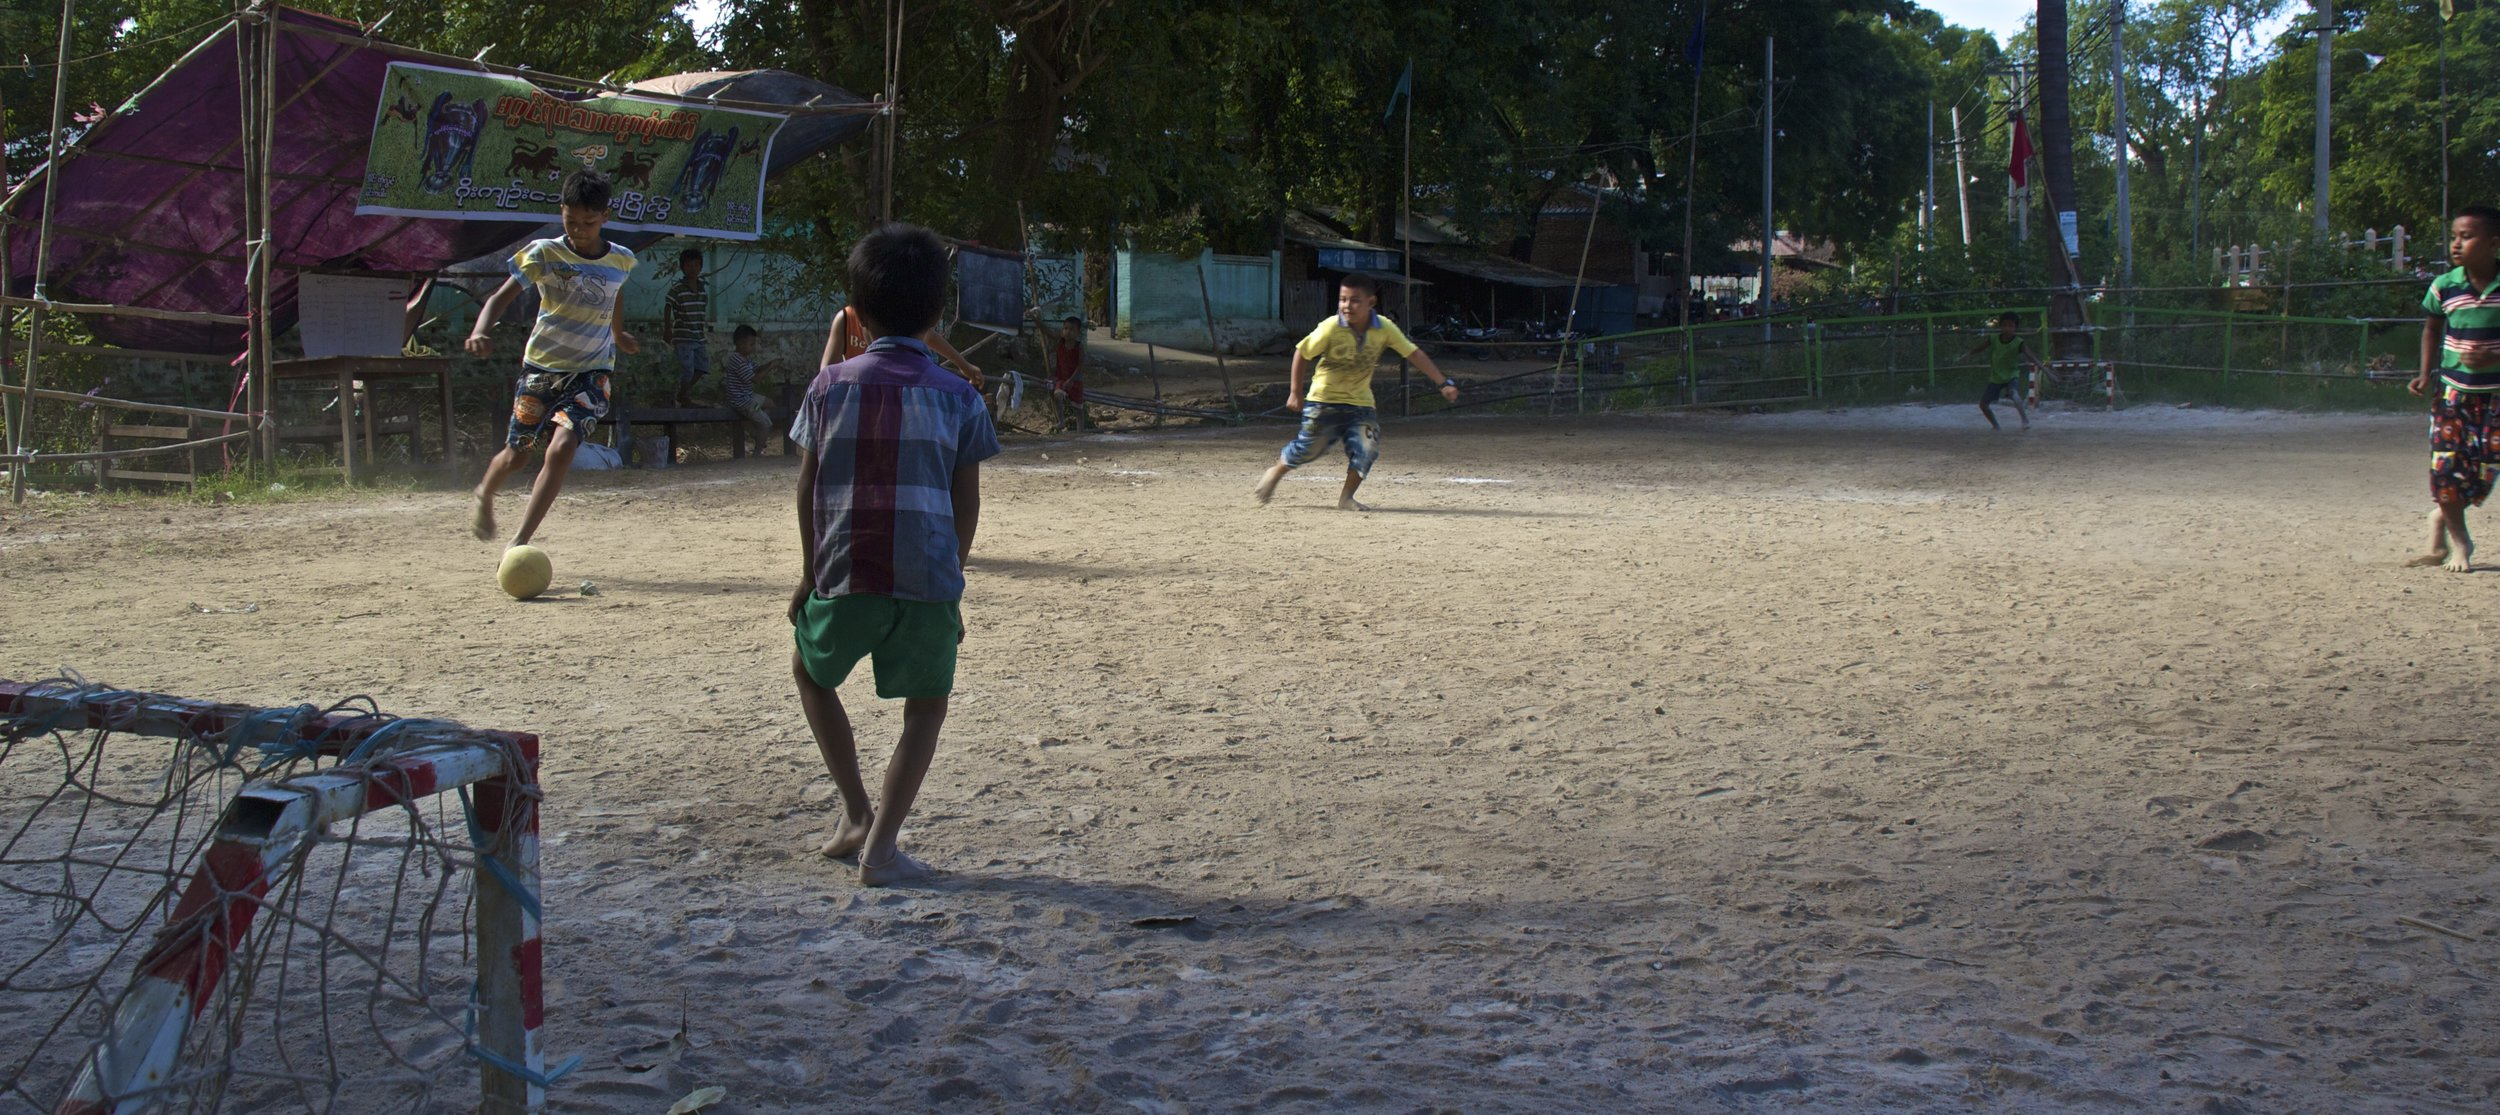 bagan burma myanmar burmese children soccer football 1.jpg